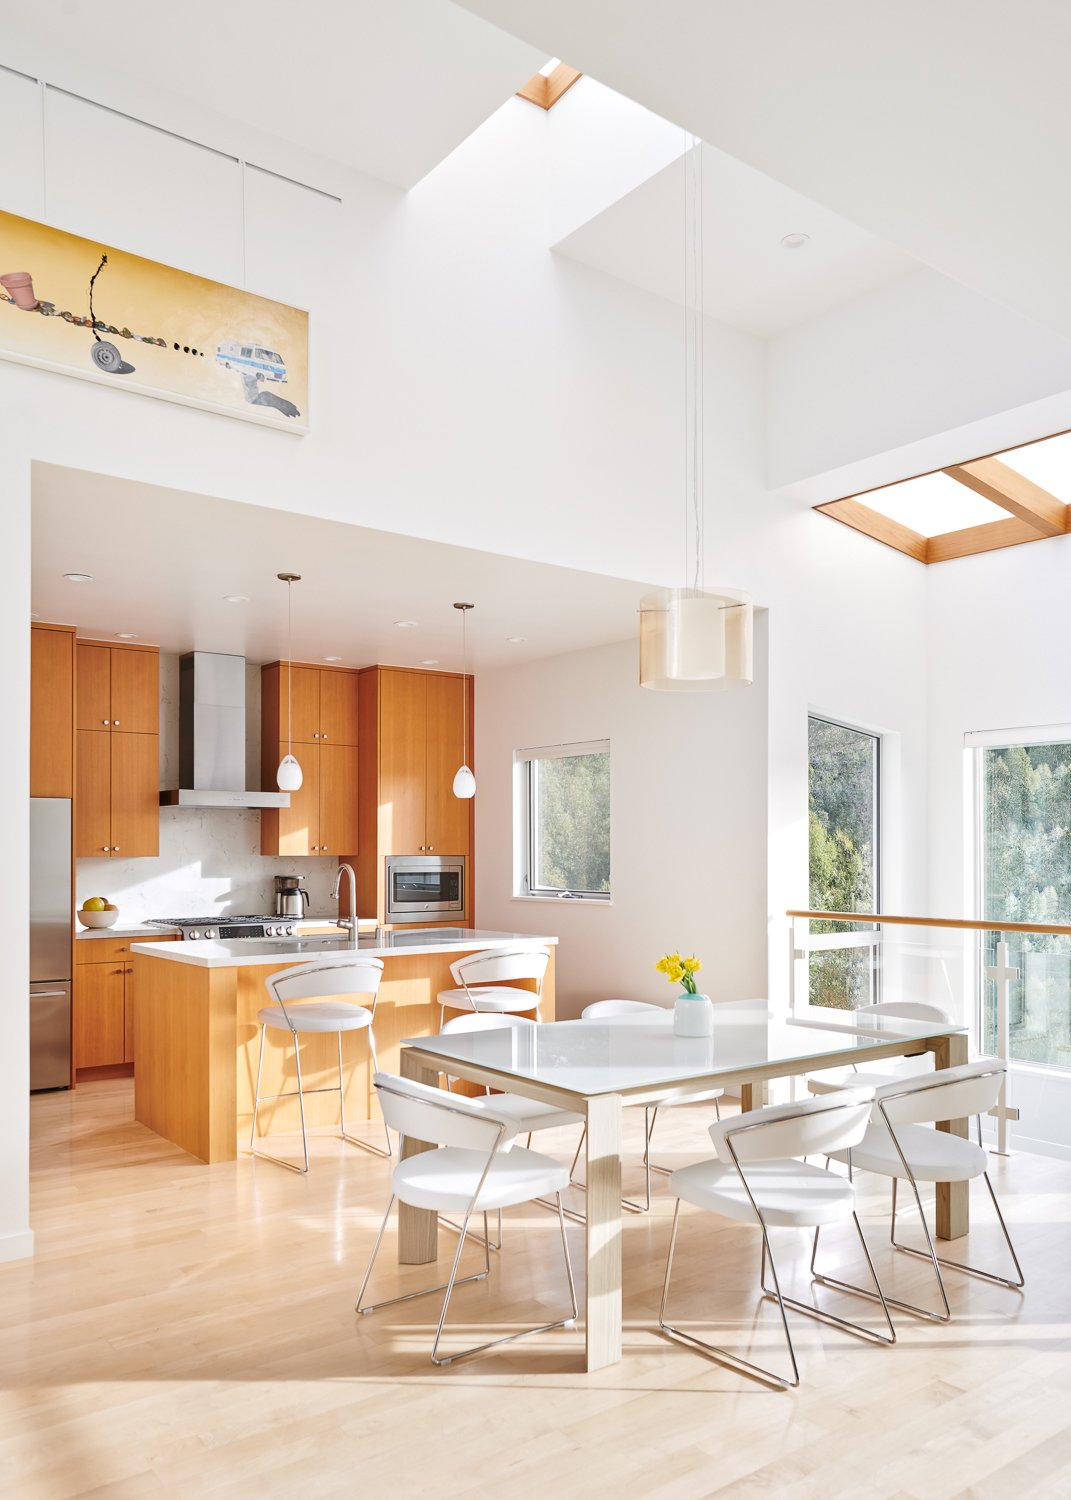 Oakland Hills I by Andrew Morrall kitchen and dining room